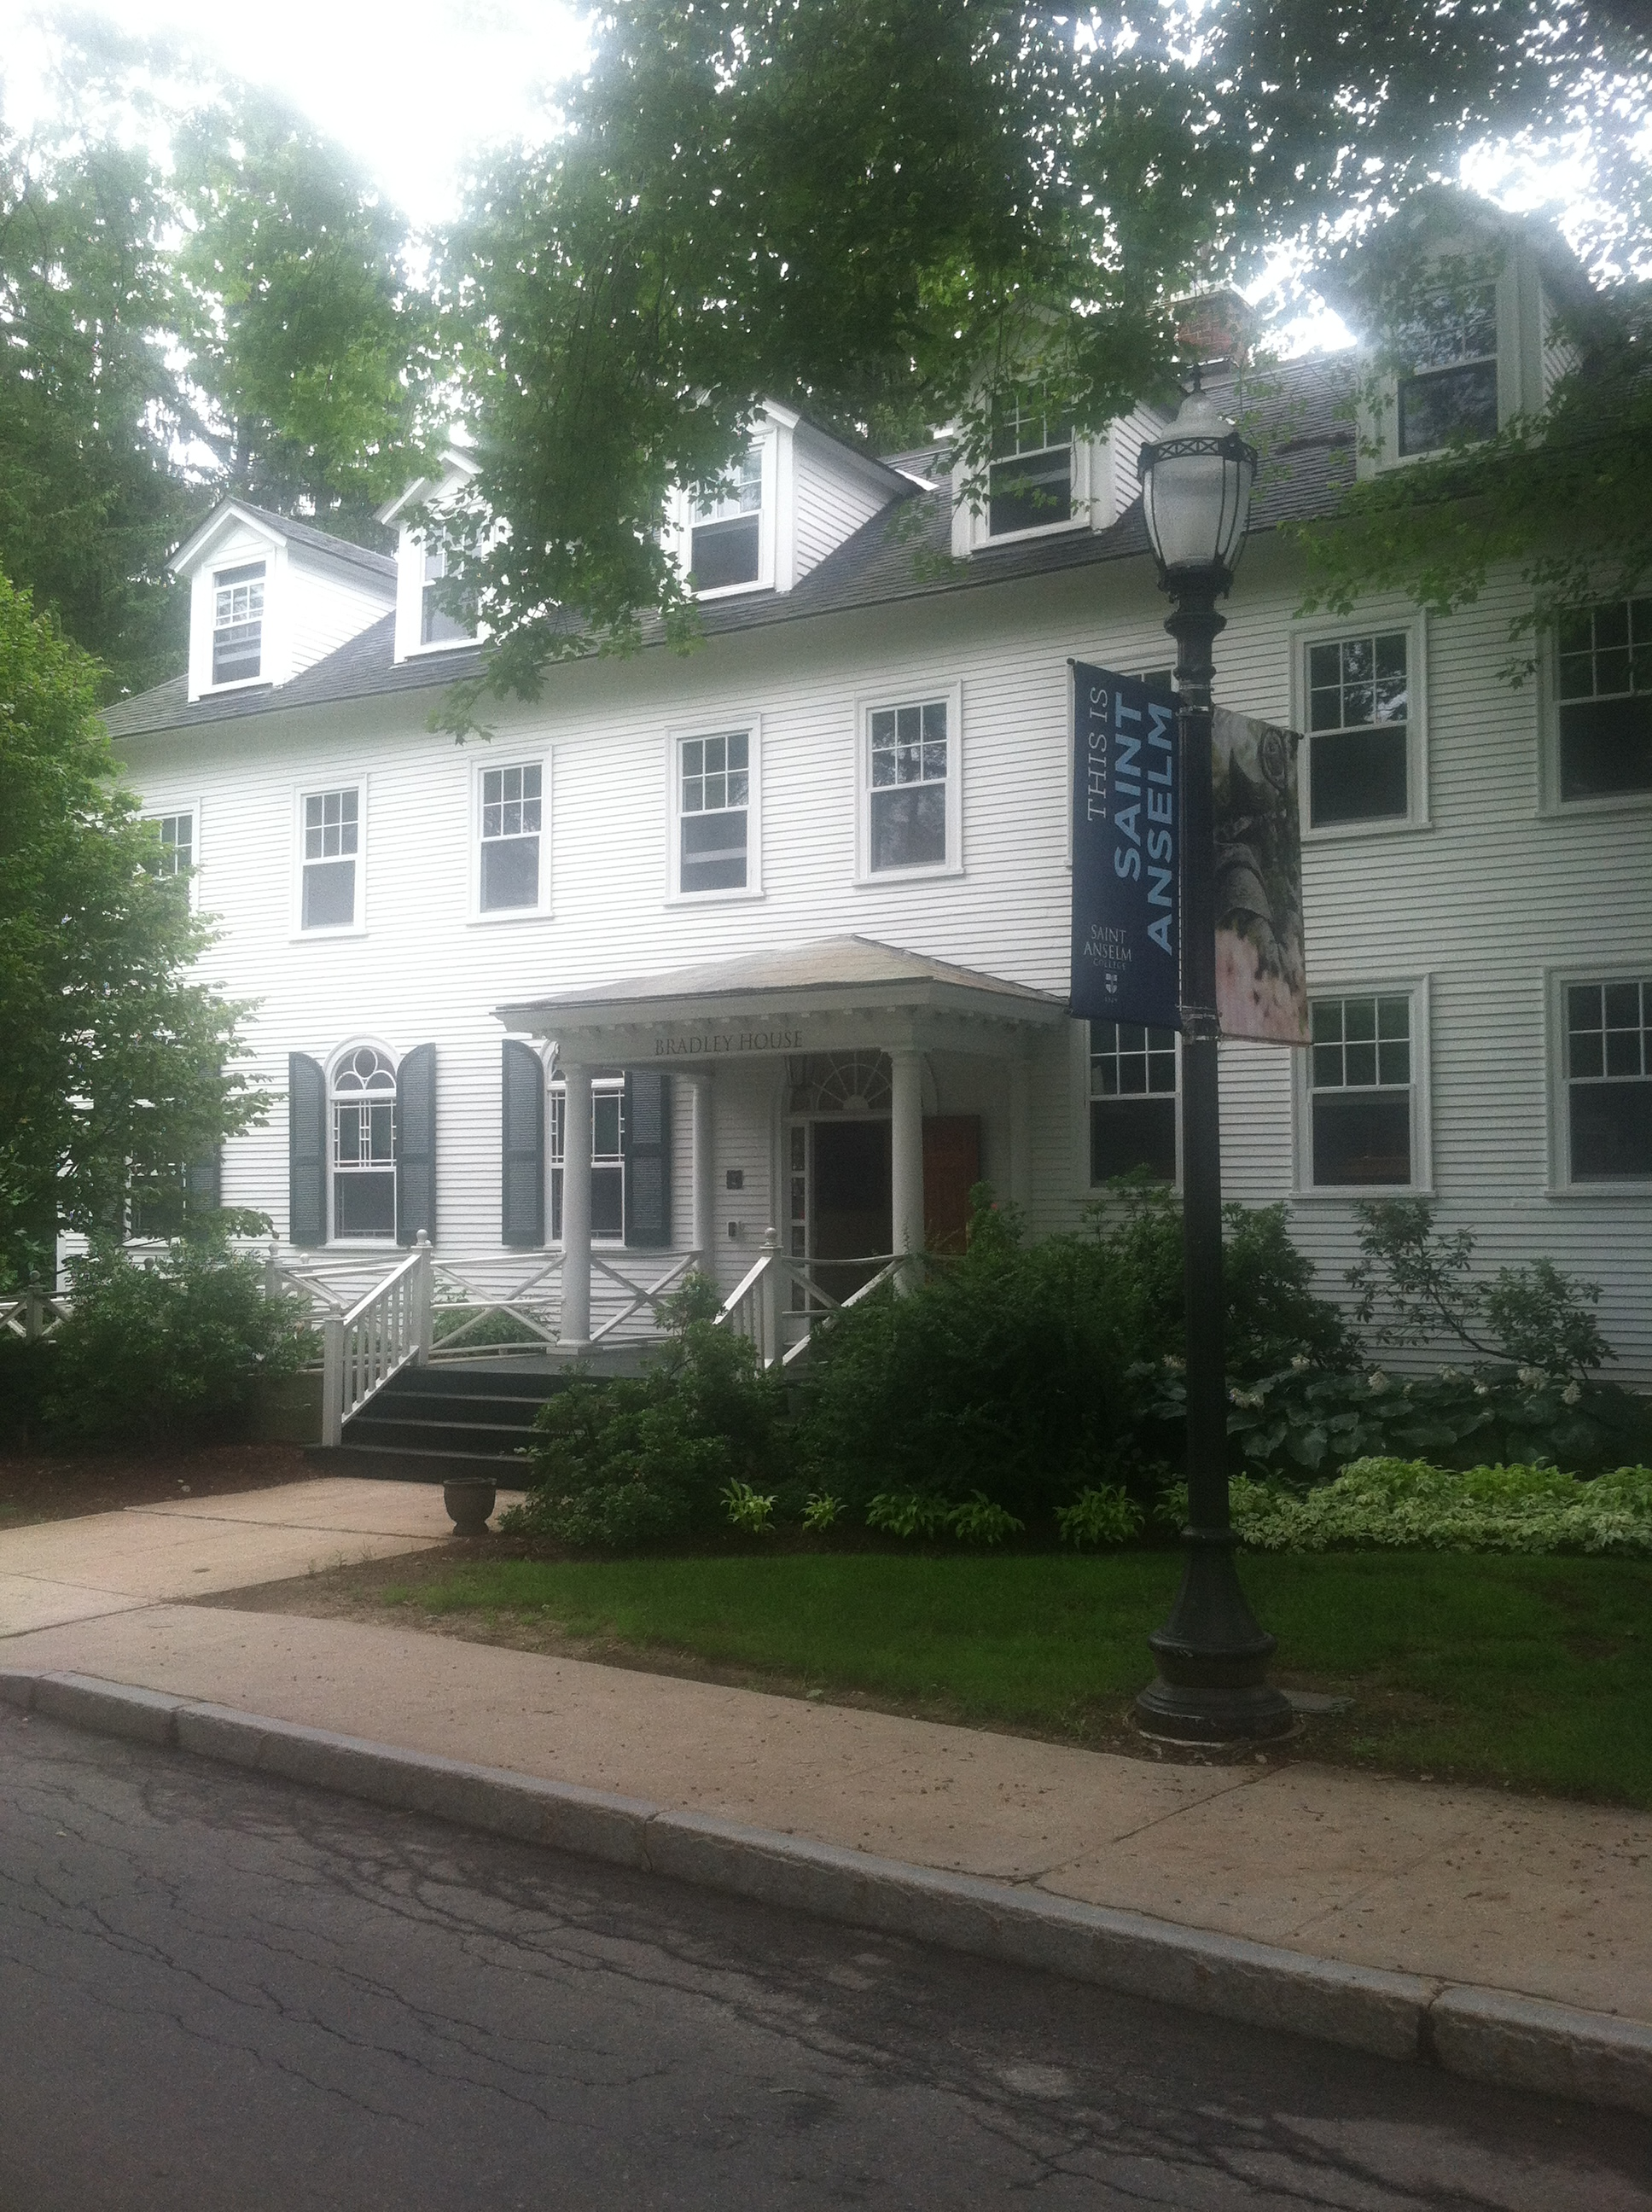 Bradley House - Saint Anselm College